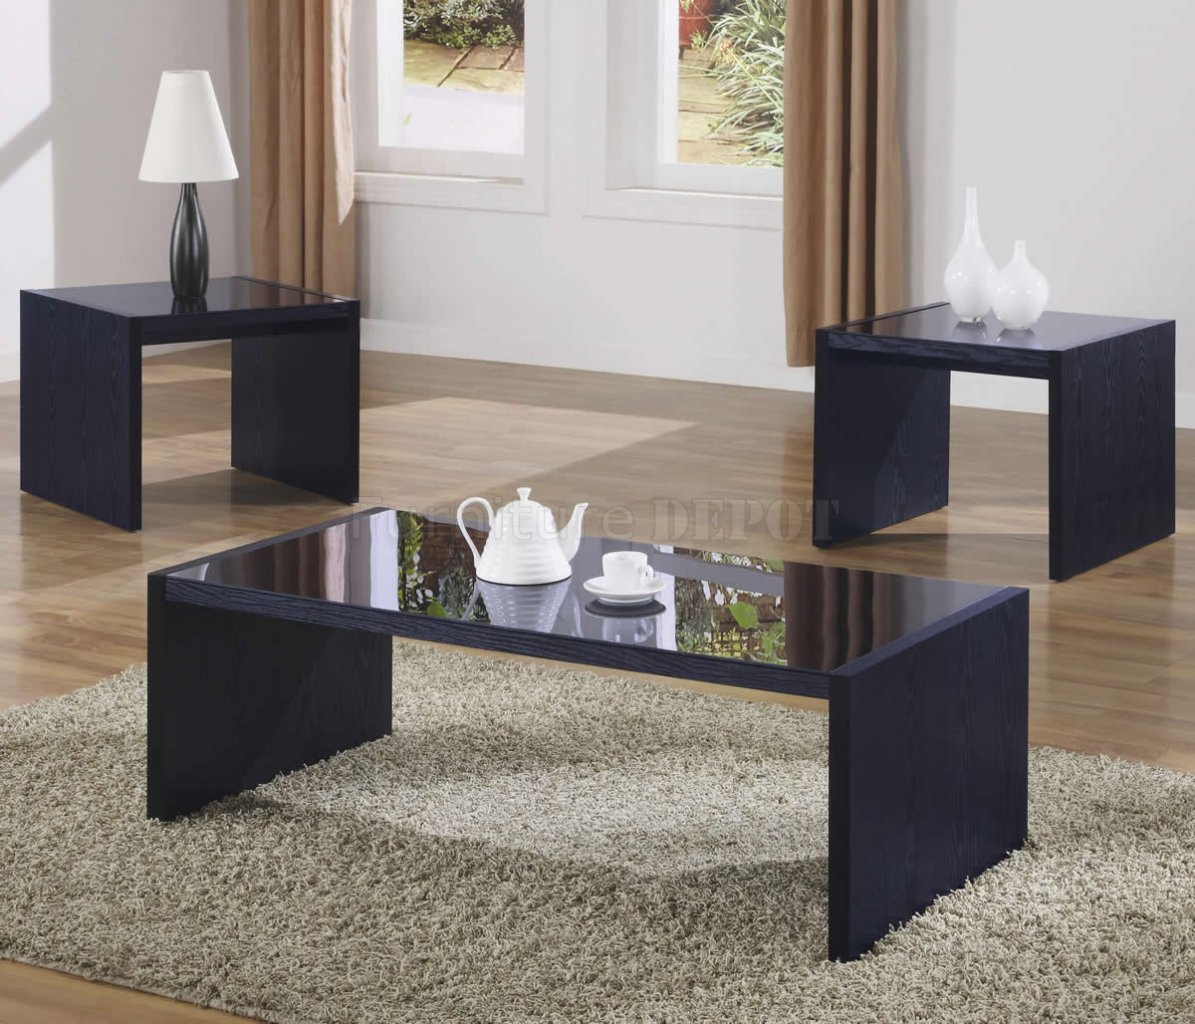 Black Modern Coffee Table Use The Largest As A Coffee Table Or Group Them For A Graphic Display (Image 7 of 9)